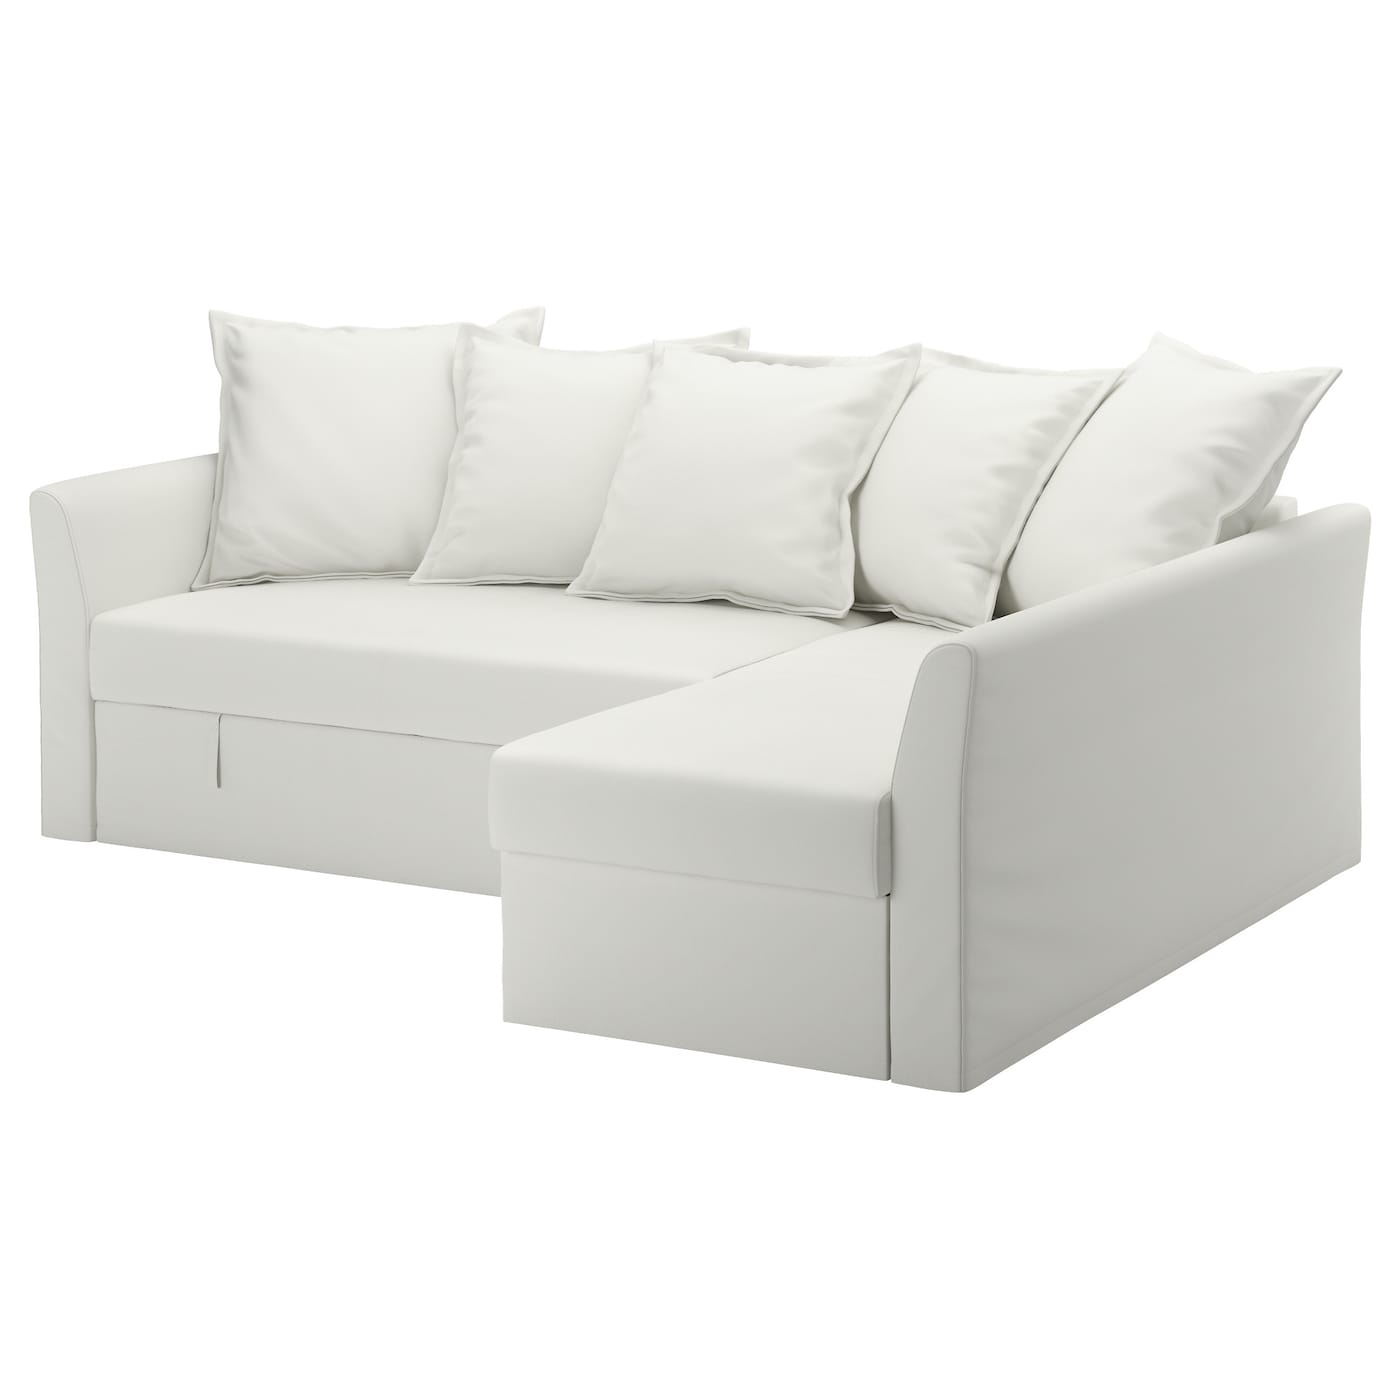 holmsund corner sofa bed ransta white ikea. Black Bedroom Furniture Sets. Home Design Ideas